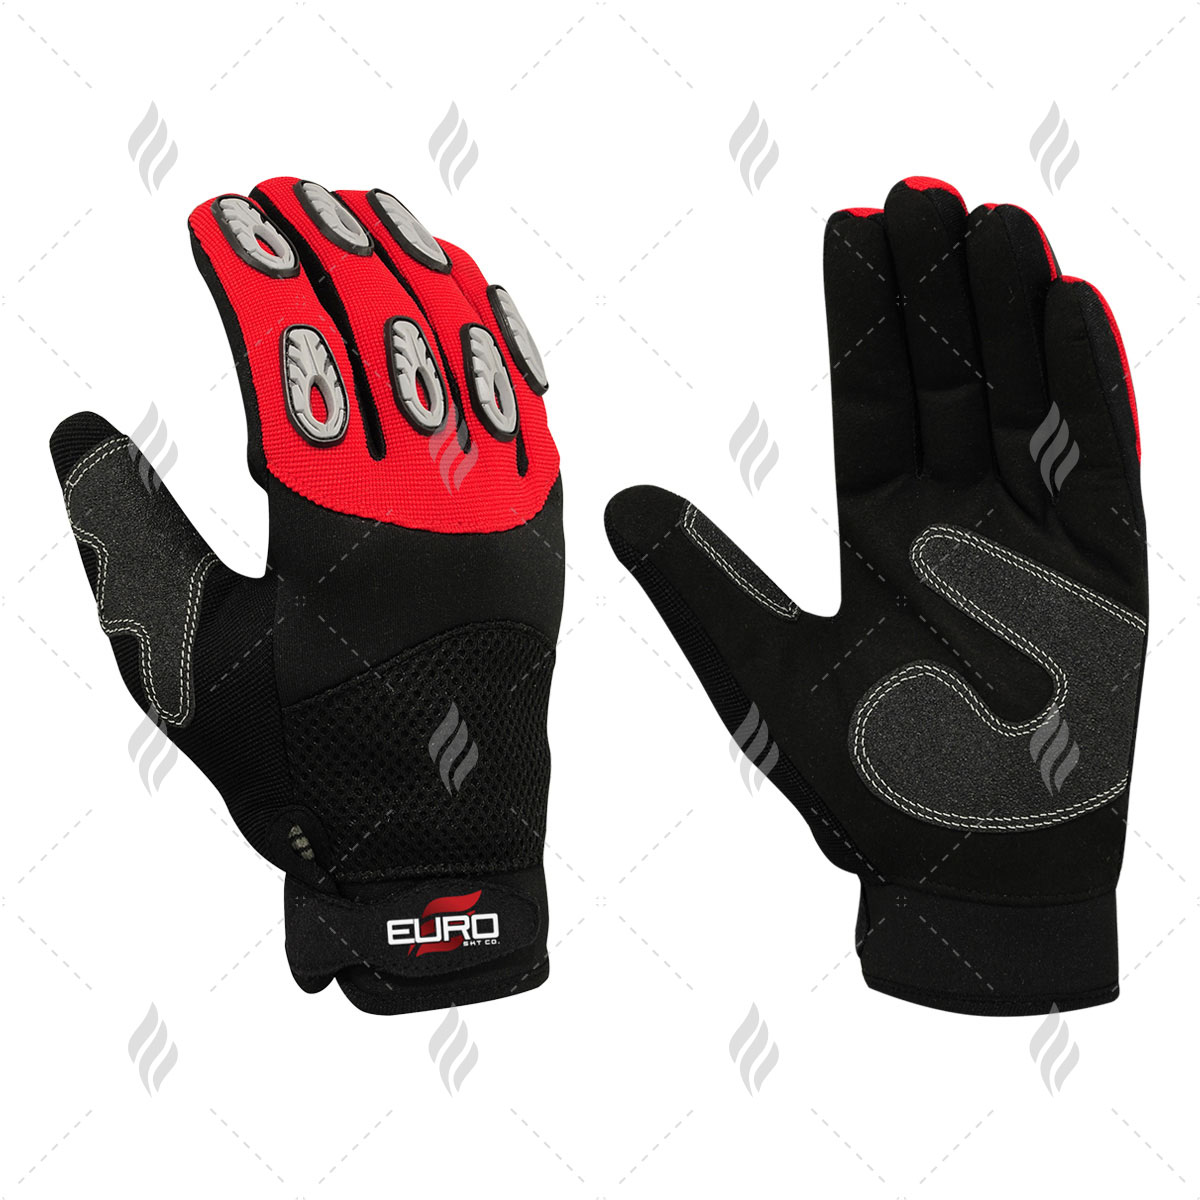 Customized Best Quality Mechanic Gloves | Leather Mechanical Work Gloves